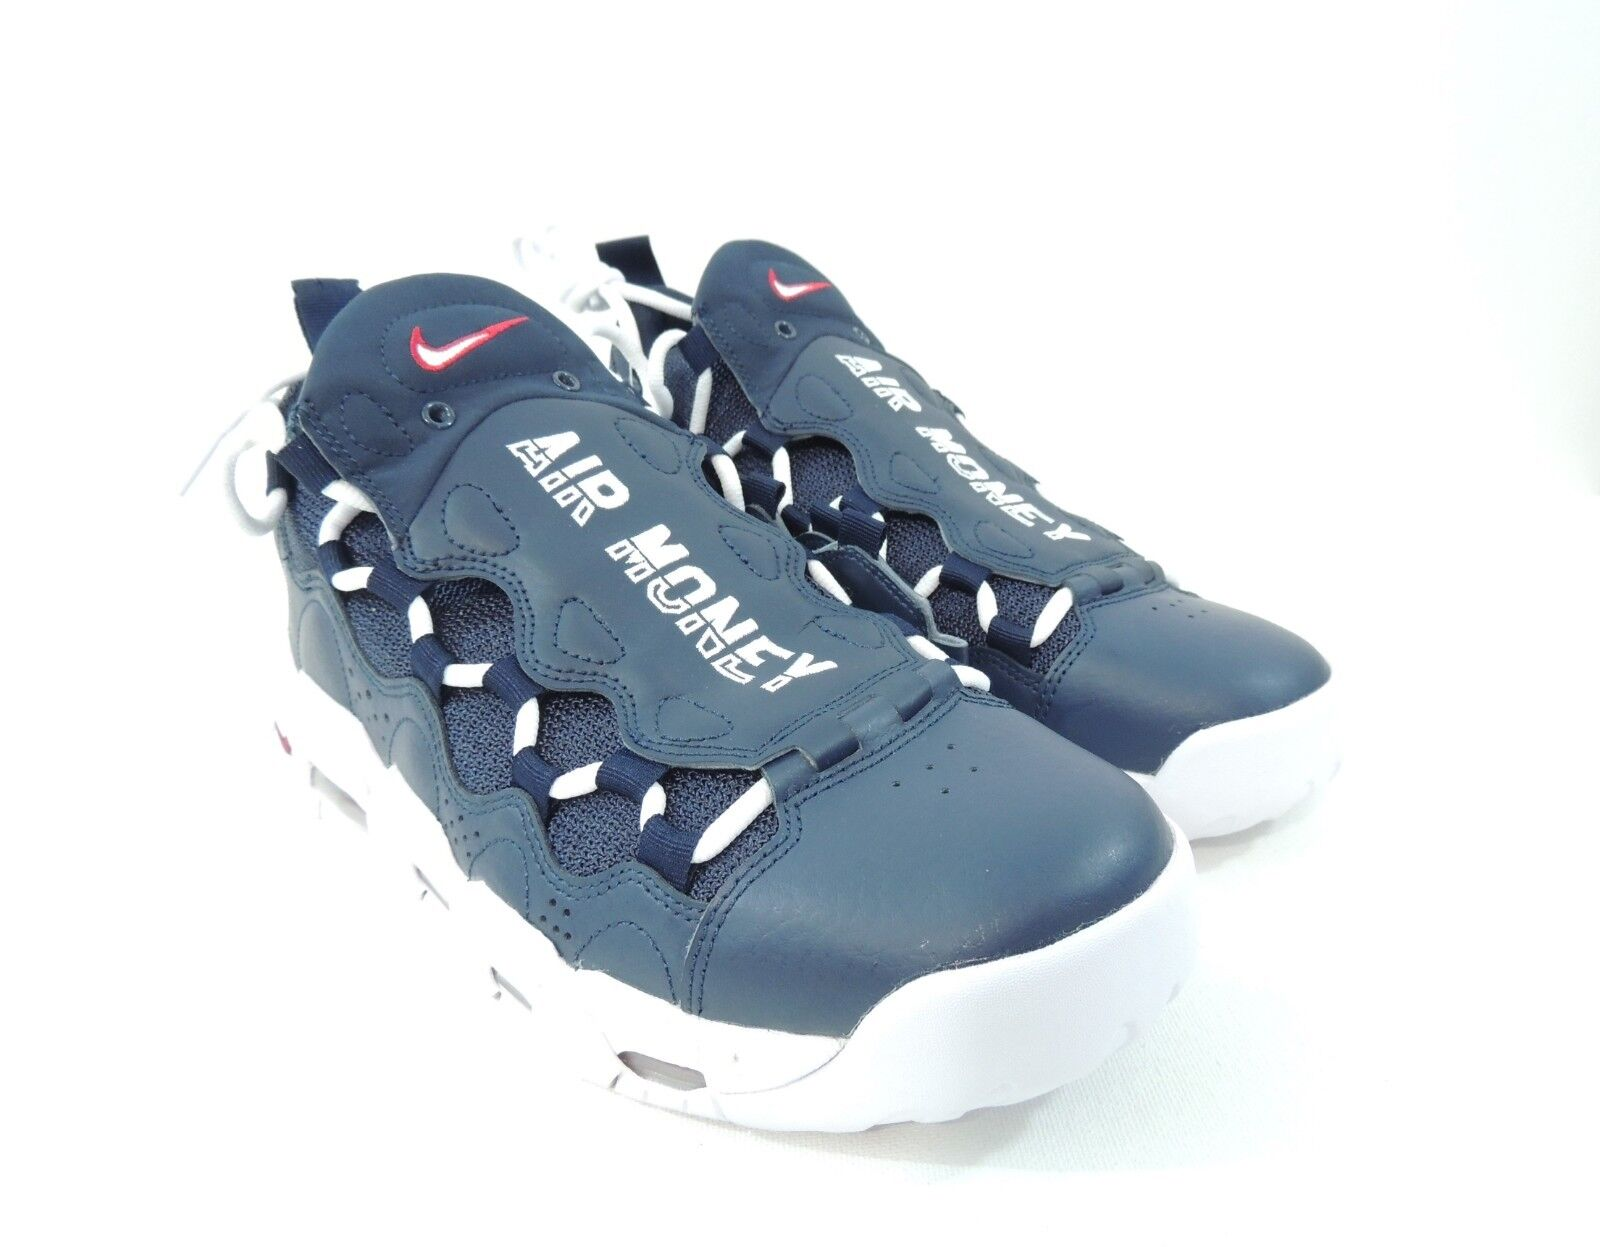 Nike Mens Air More Money Olympic Obsidian blueee White Gym Red AJ2998-400 Size 8